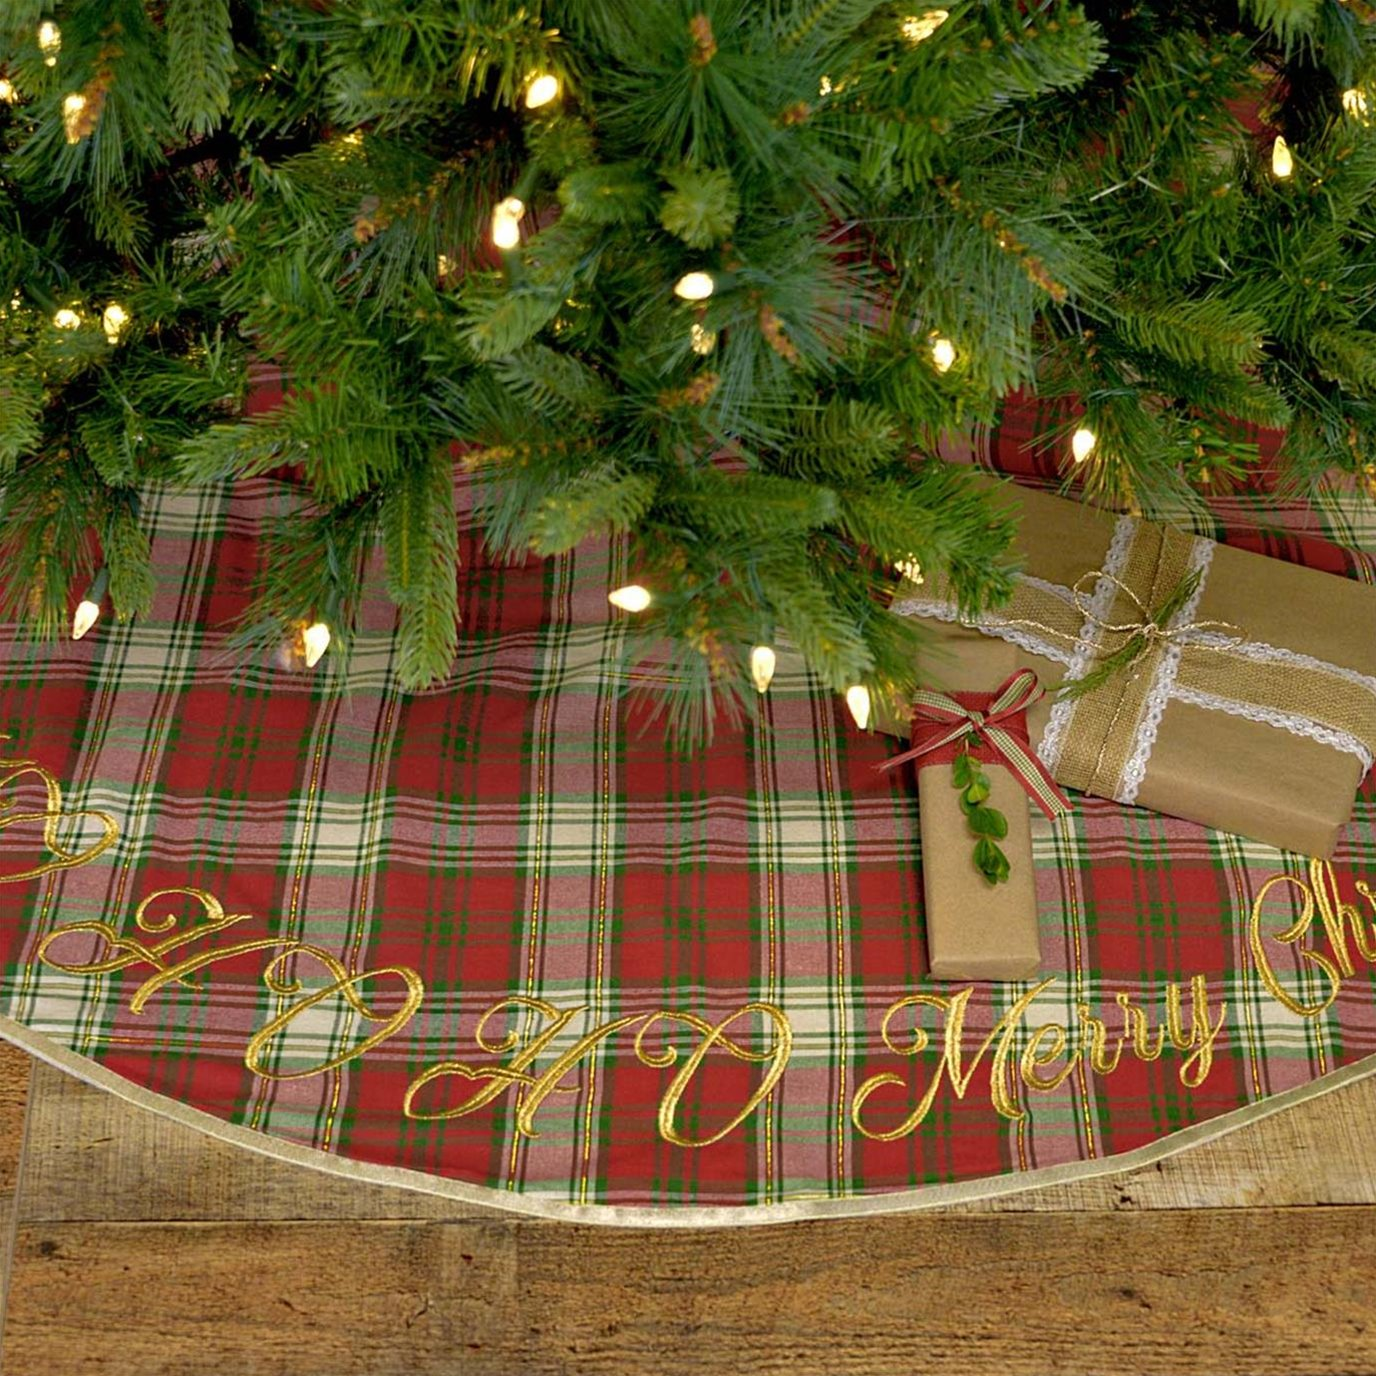 HO HO Holiday Tree Skirt 48